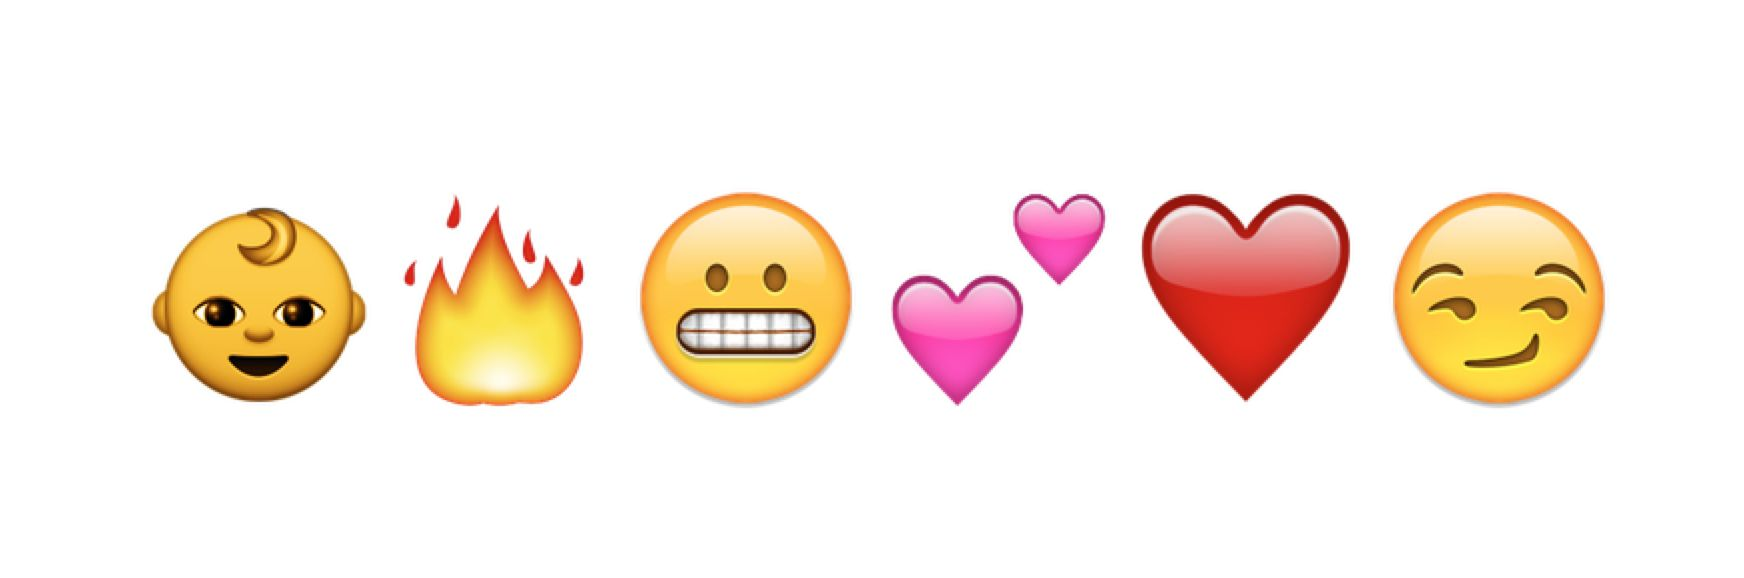 Movie Emoji Pop Level 10 as well Emoticon Crying furthermore B00f74pidi additionally 406126 as well Emoji And Their Meaning Chart bNVryUiR3aNyfF471HJEr7RxDwkGBV7nPEAk1Eq1vTM. on emoji list iphone android new